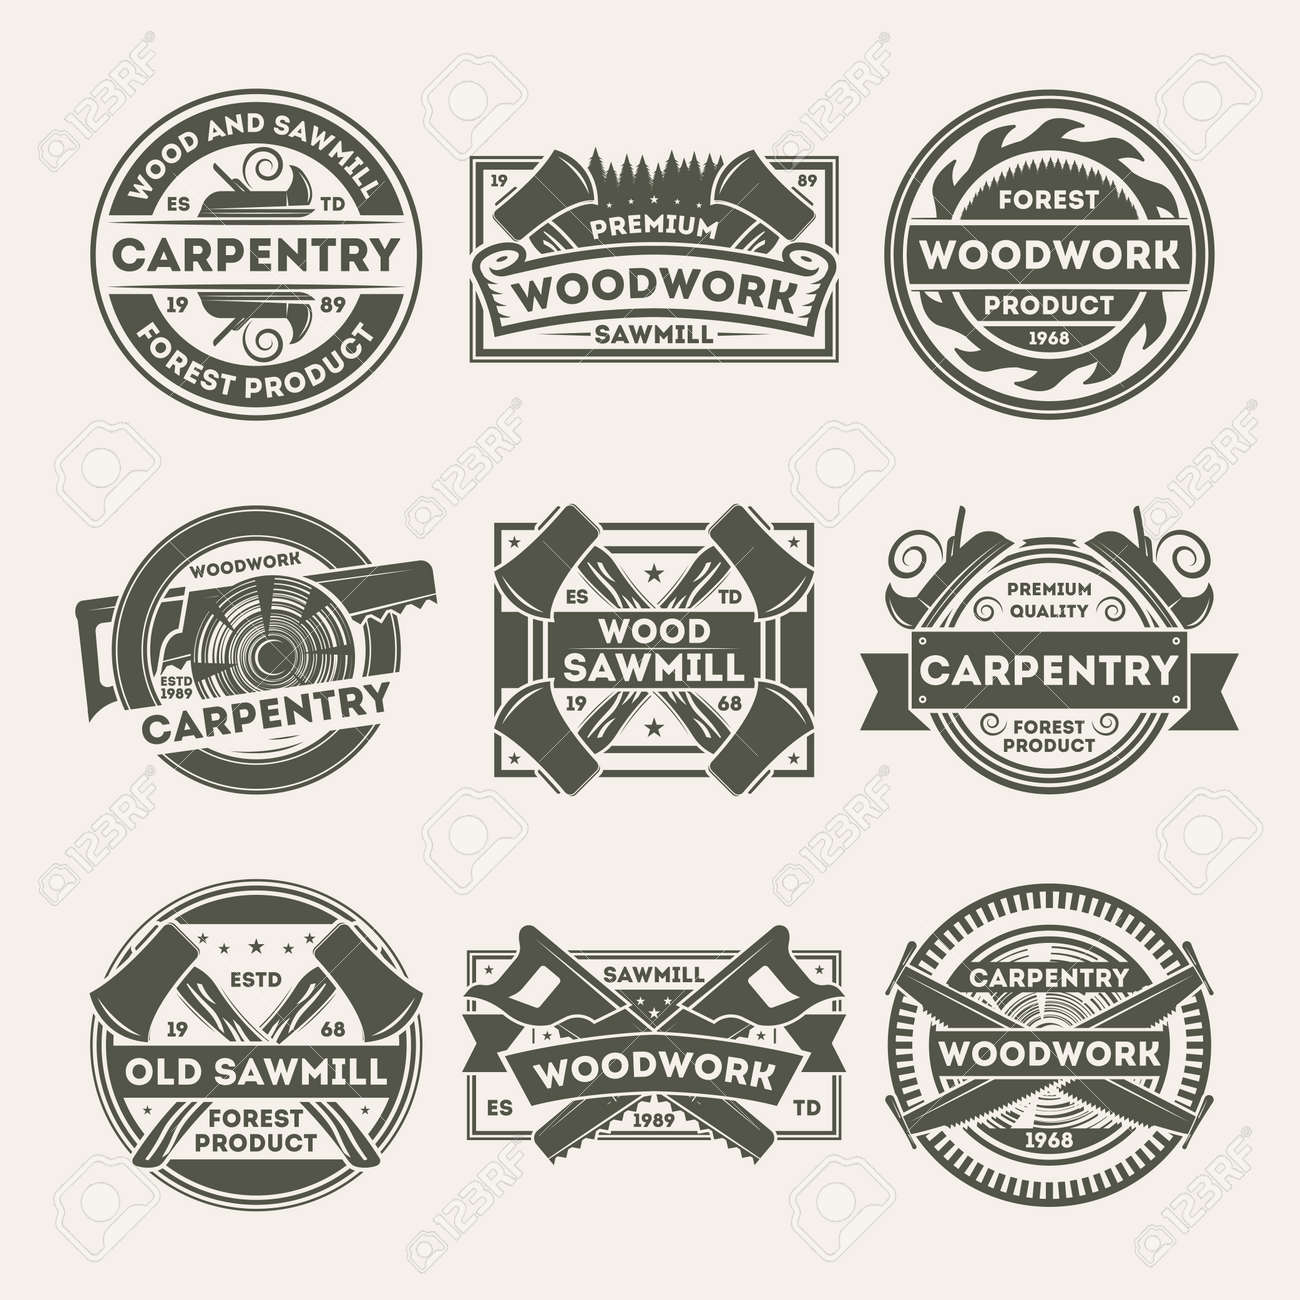 woodwork company vintage isolated label set. forest woodwork